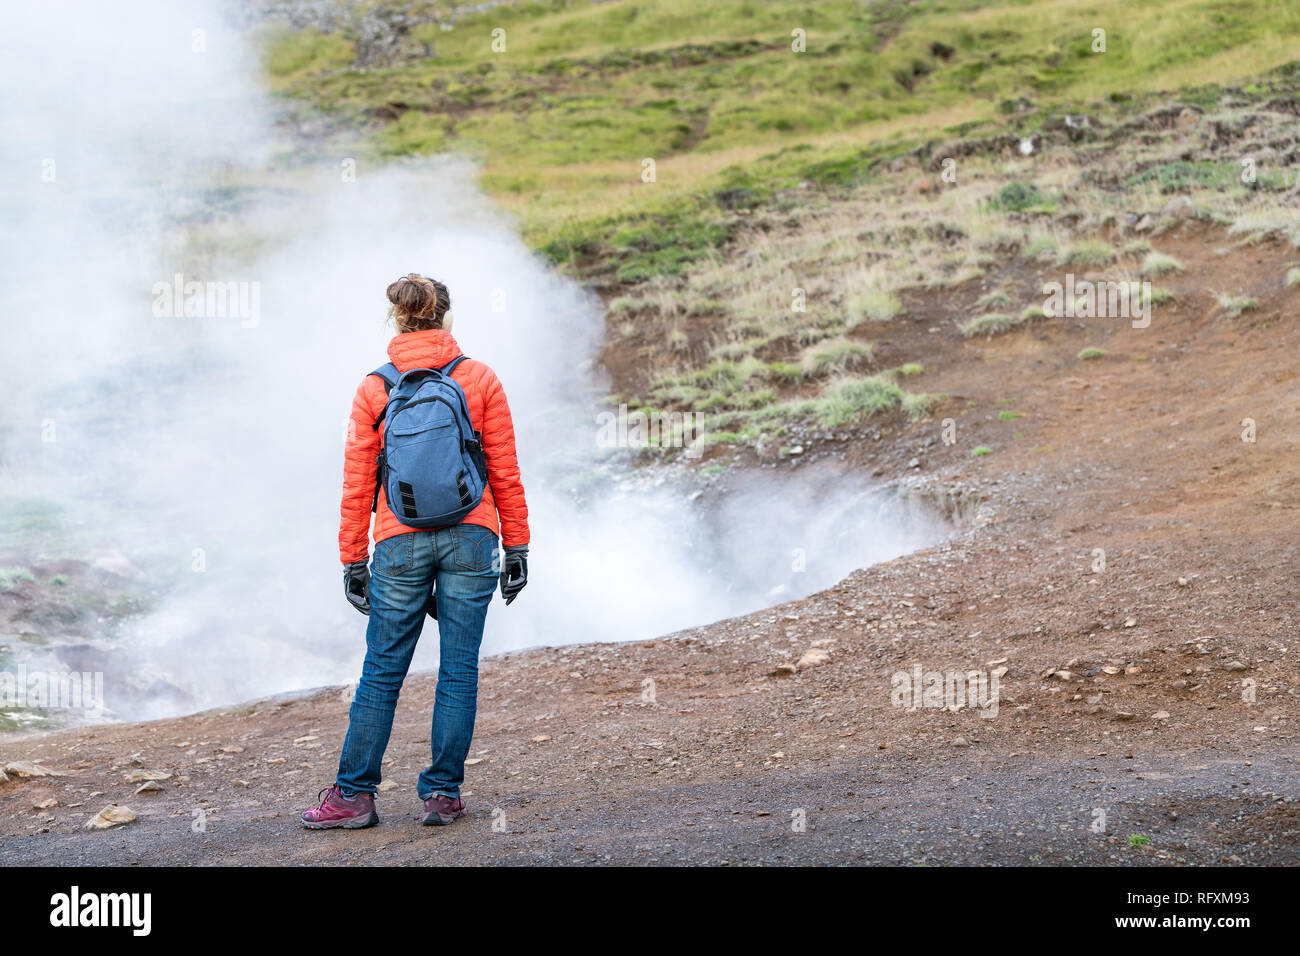 Reykjadalur, Iceland Hveragerdi Hot Springs road footpath with steam fumarole vent during autumn day in golden circle with people woman girl standing  - Stock Image